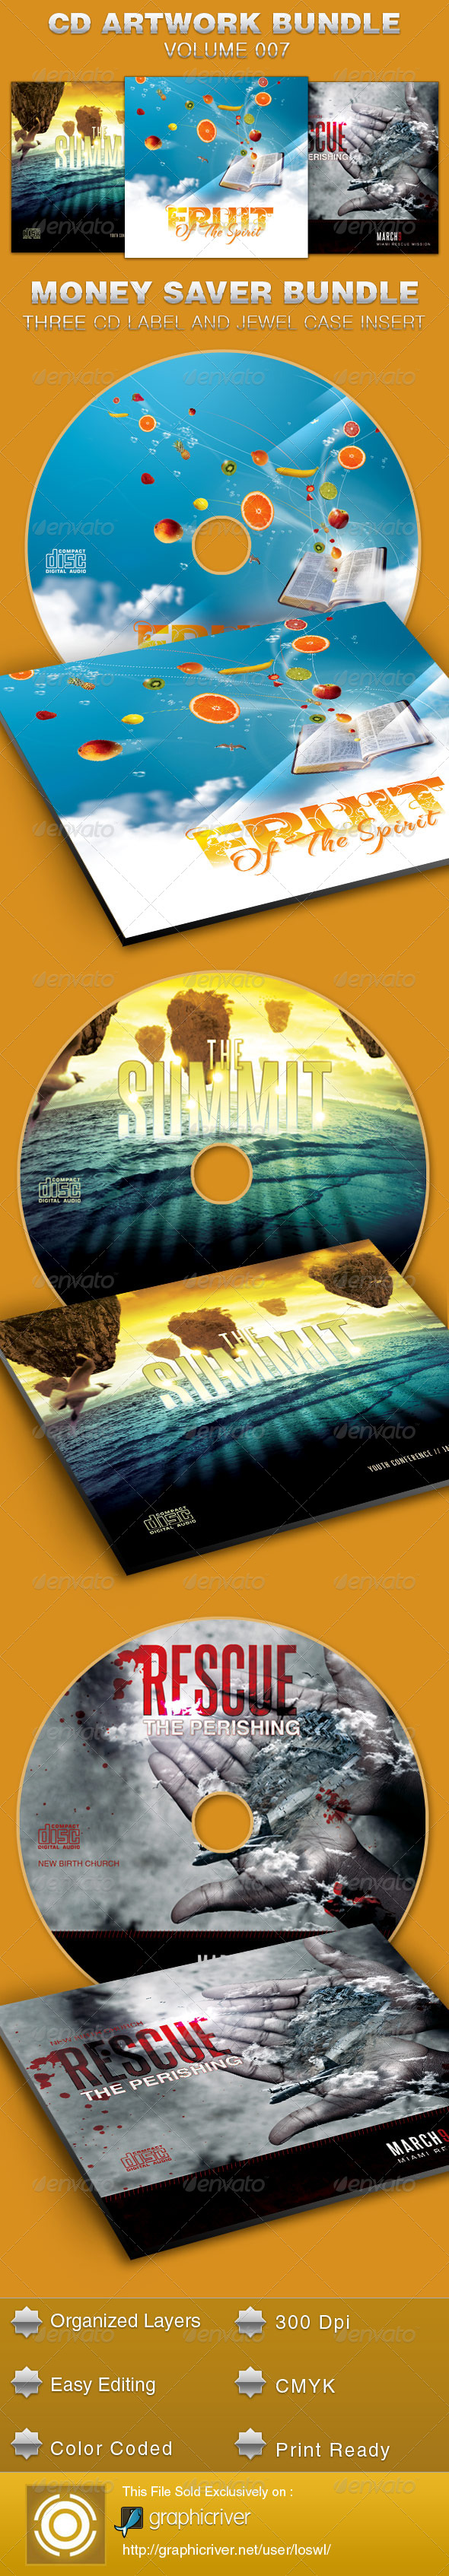 GraphicRiver CD Cover Artwork Bundle-Vol 007 5389851